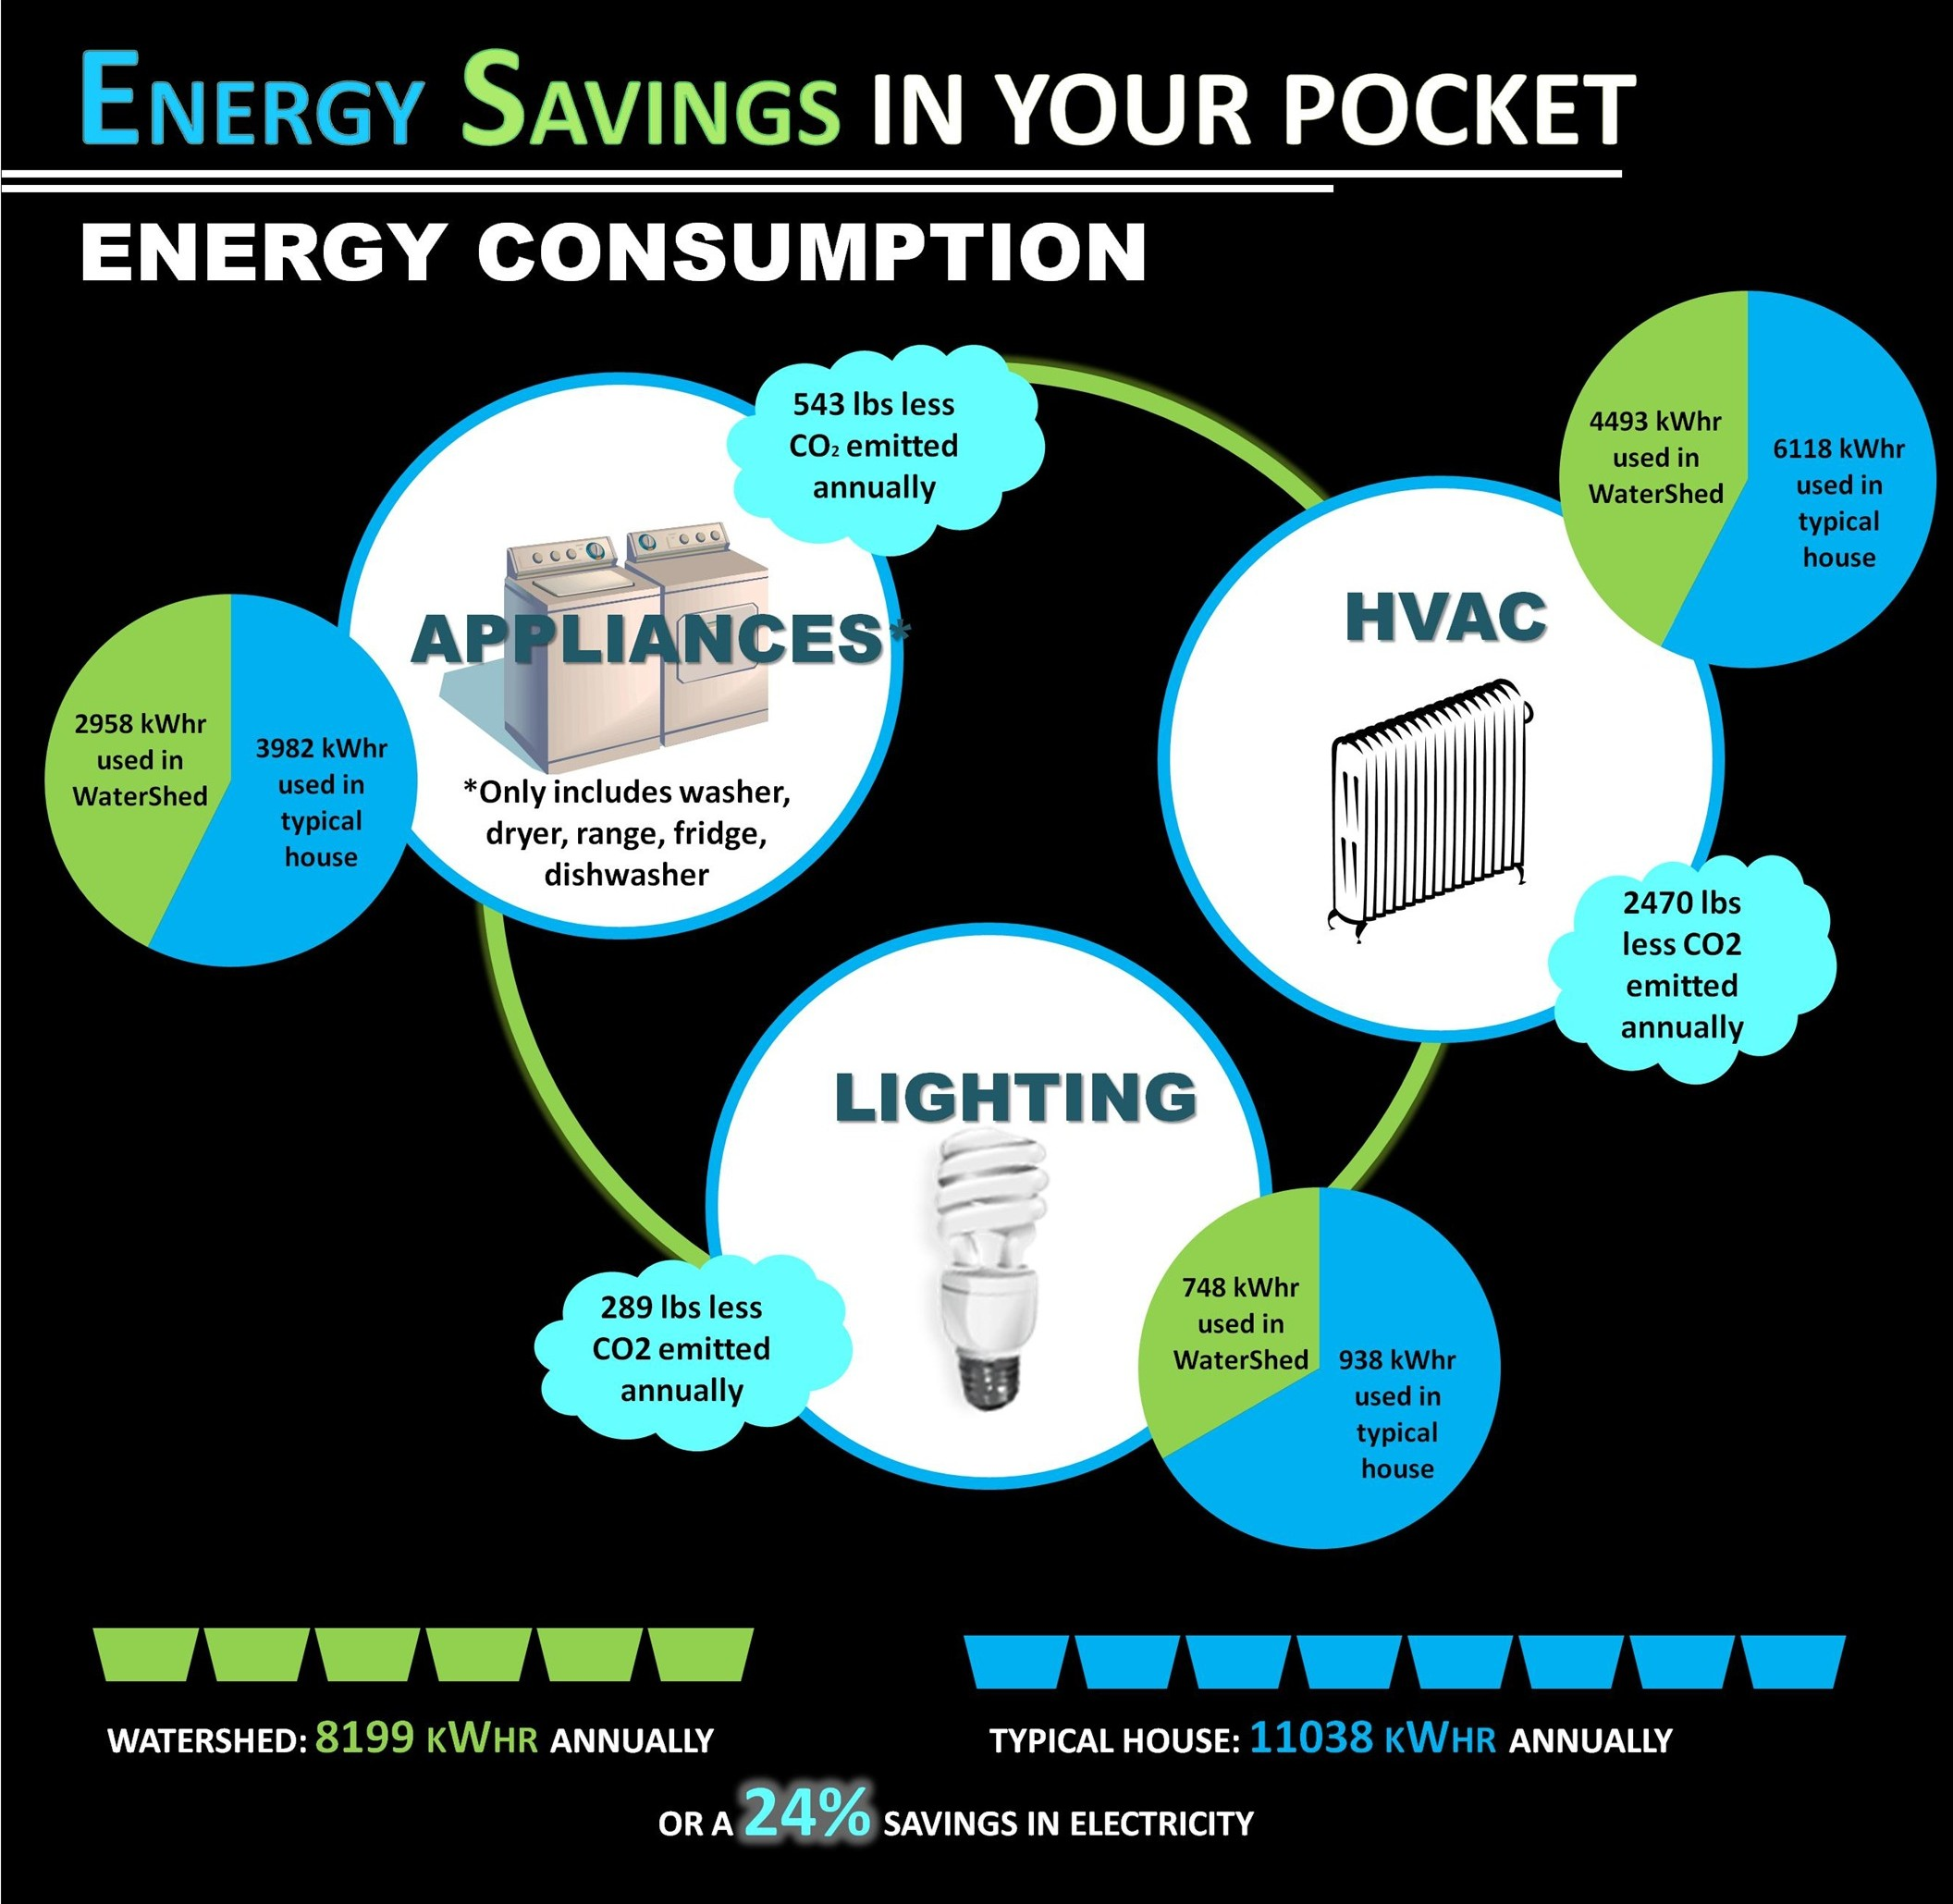 Chart of Energy Savings